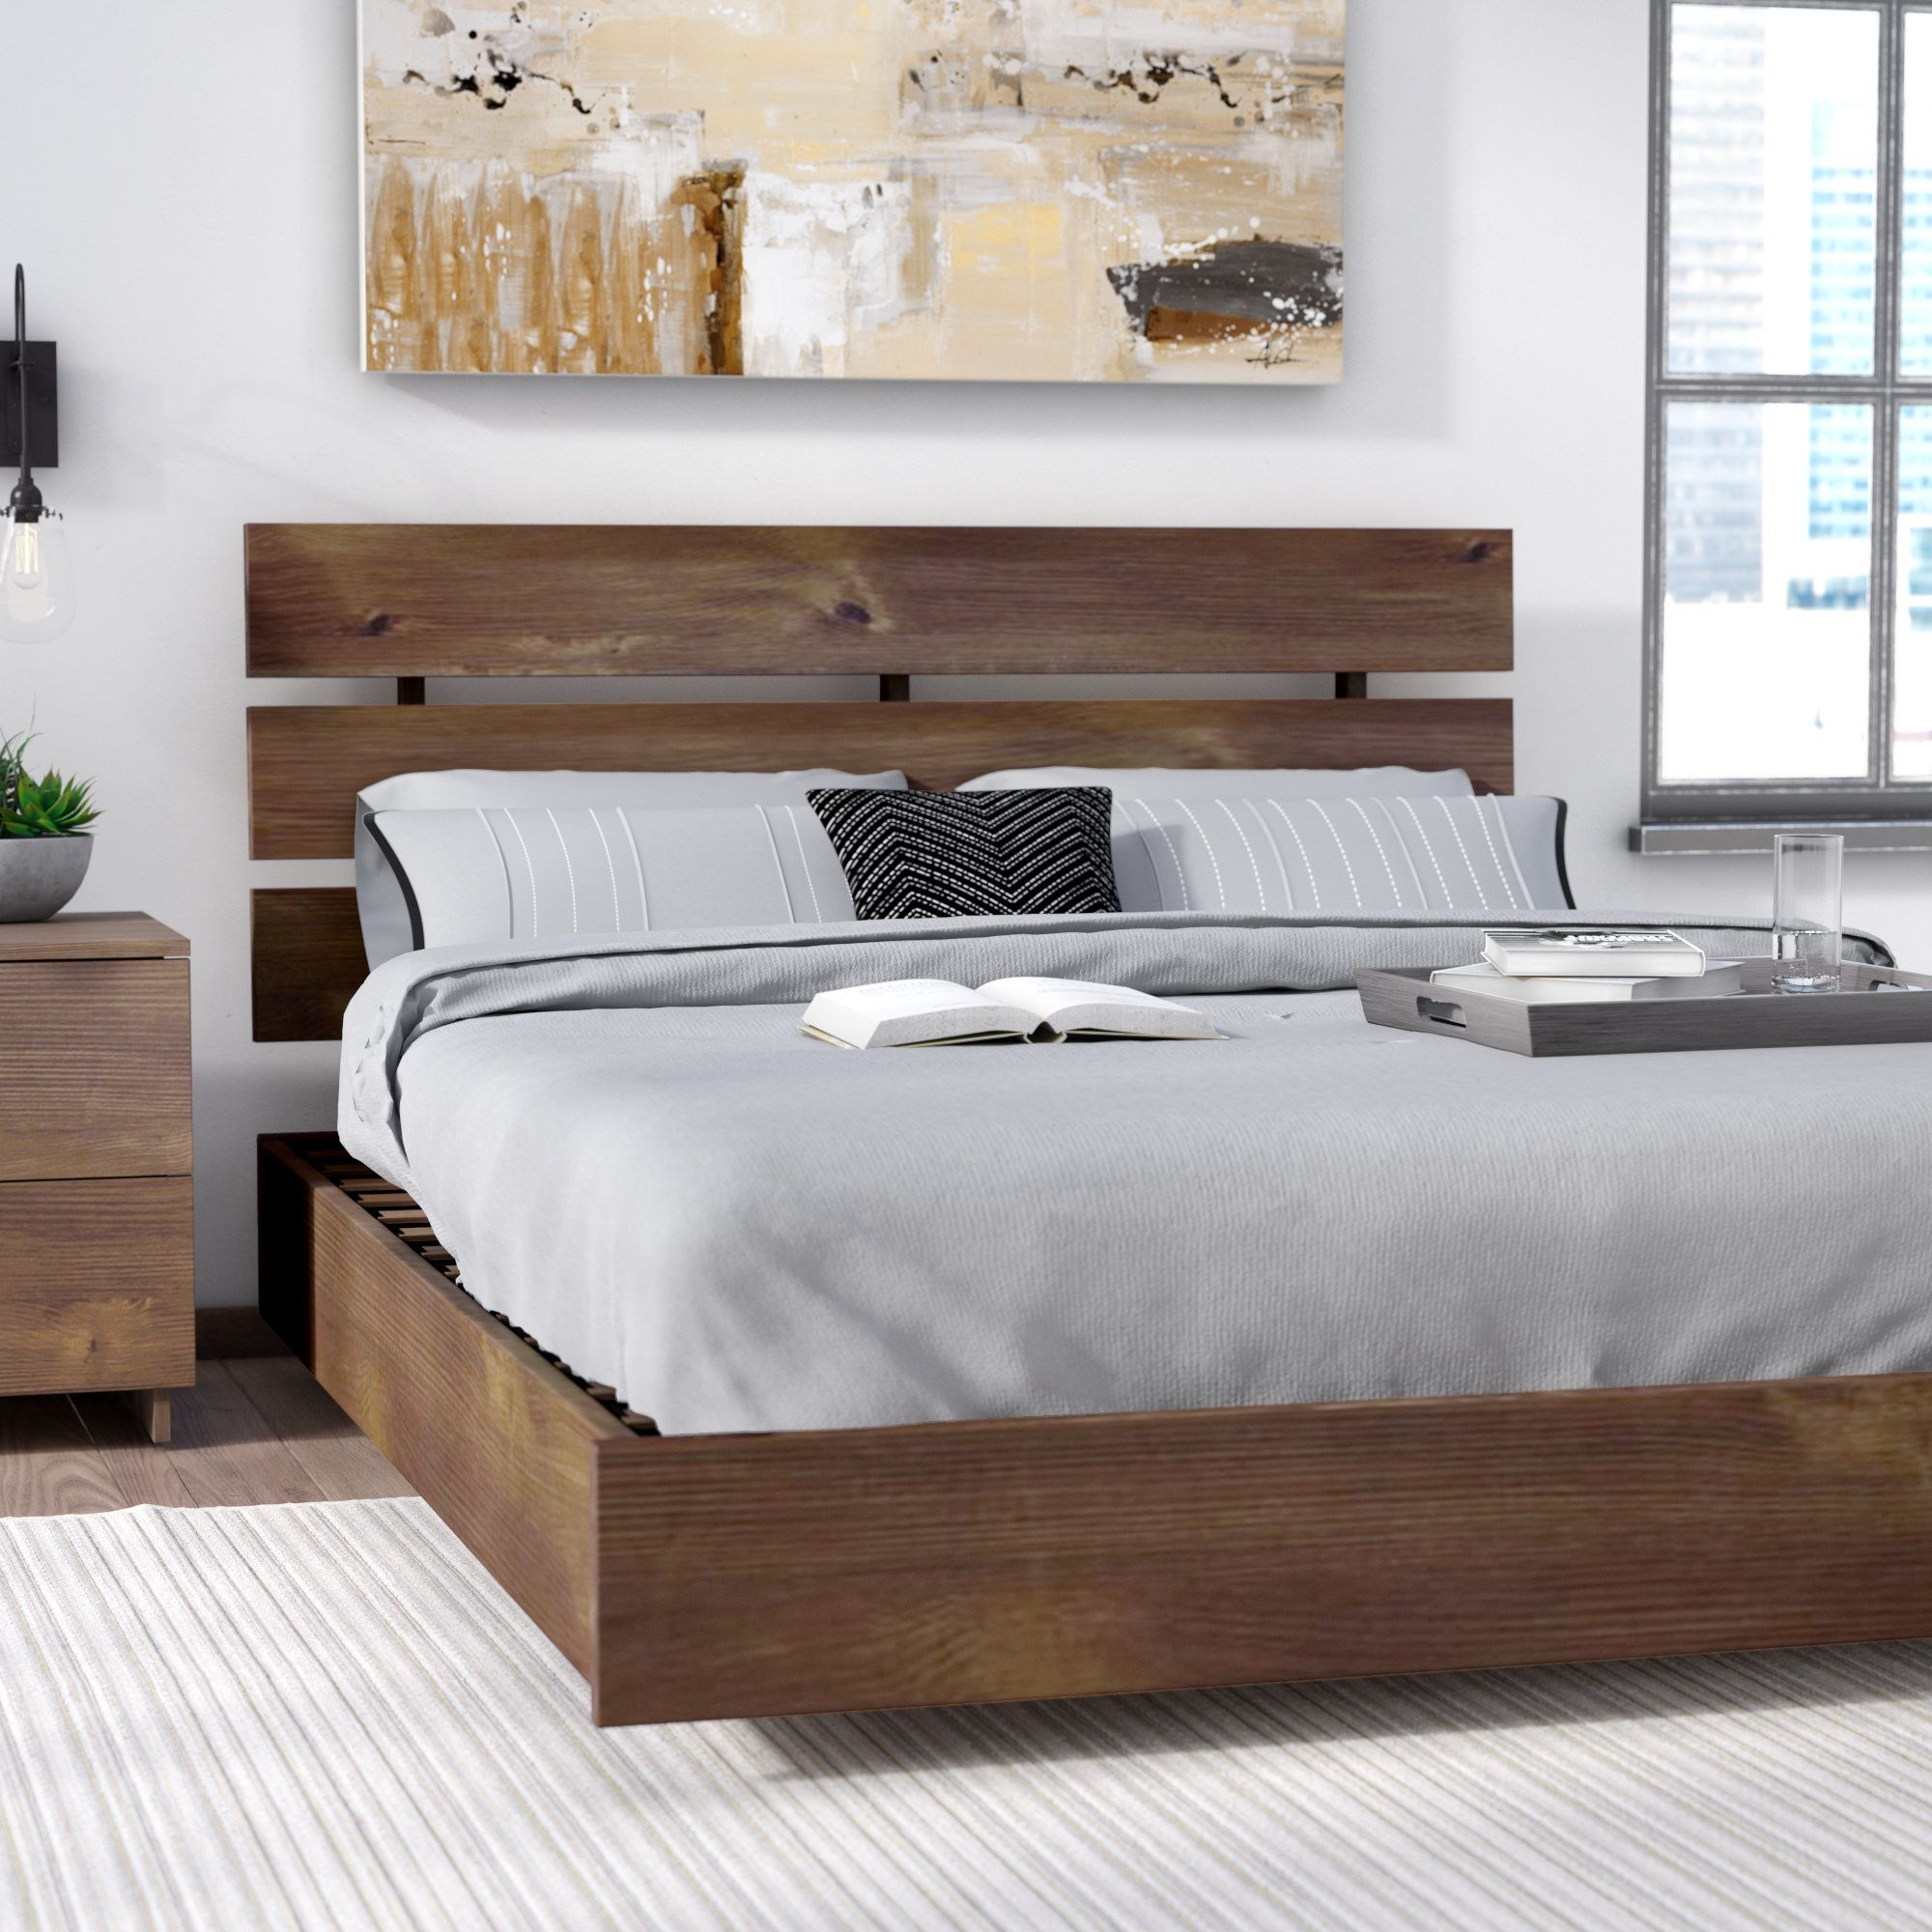 Massivholzbetten rustikal  Shondra Platform Bed | Room Plans | Pinterest | Platform beds ...